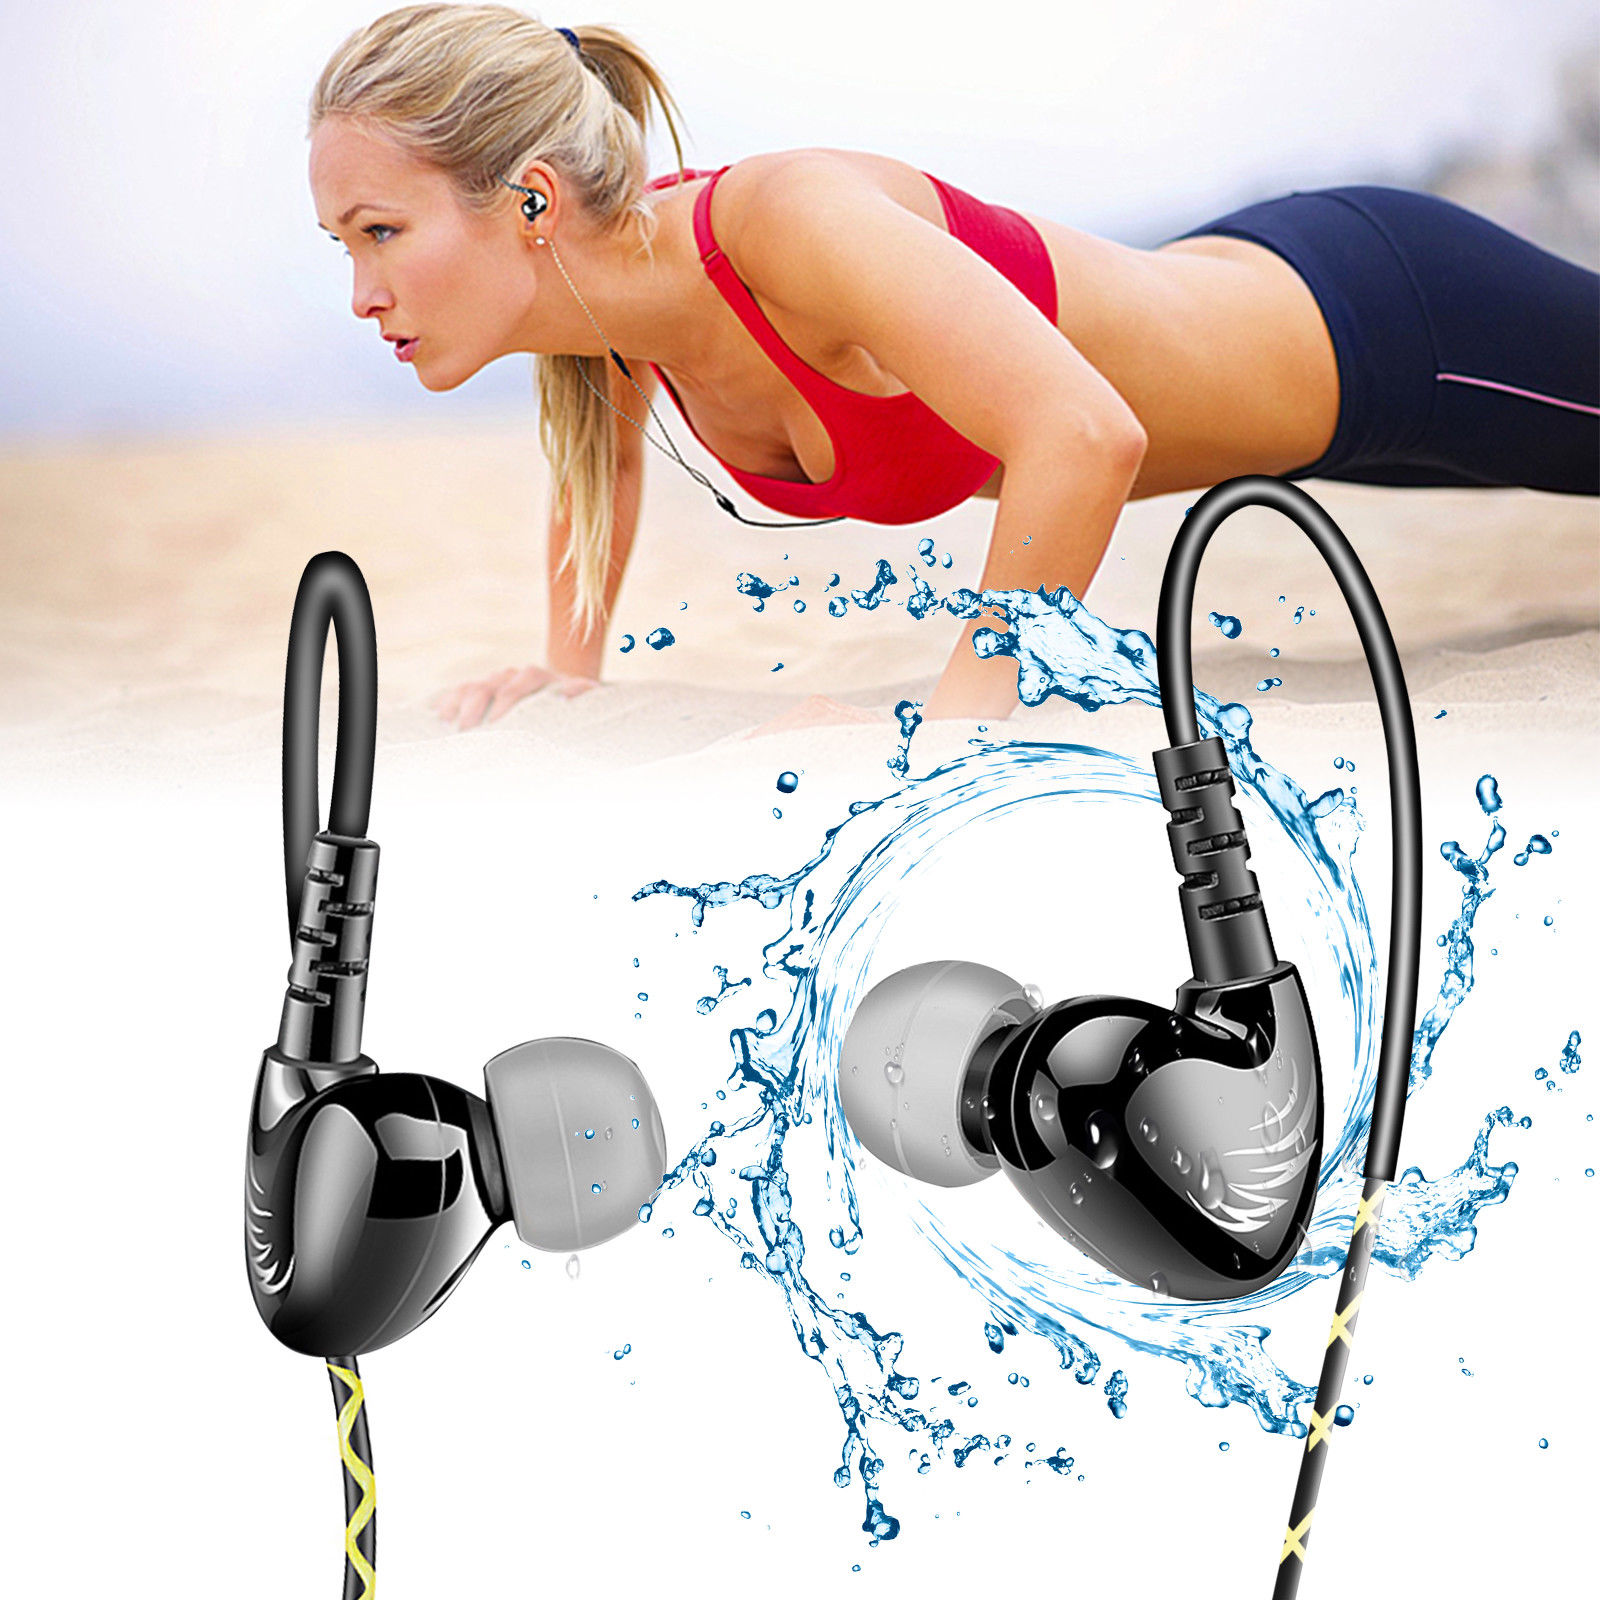 EEEKit Sports Headphones Earbuds With Microphone, Sweatproof Noise Cancelling Earphones, HIFI Stereo, Crystal Clear Sound, Ergonomic Design for Running